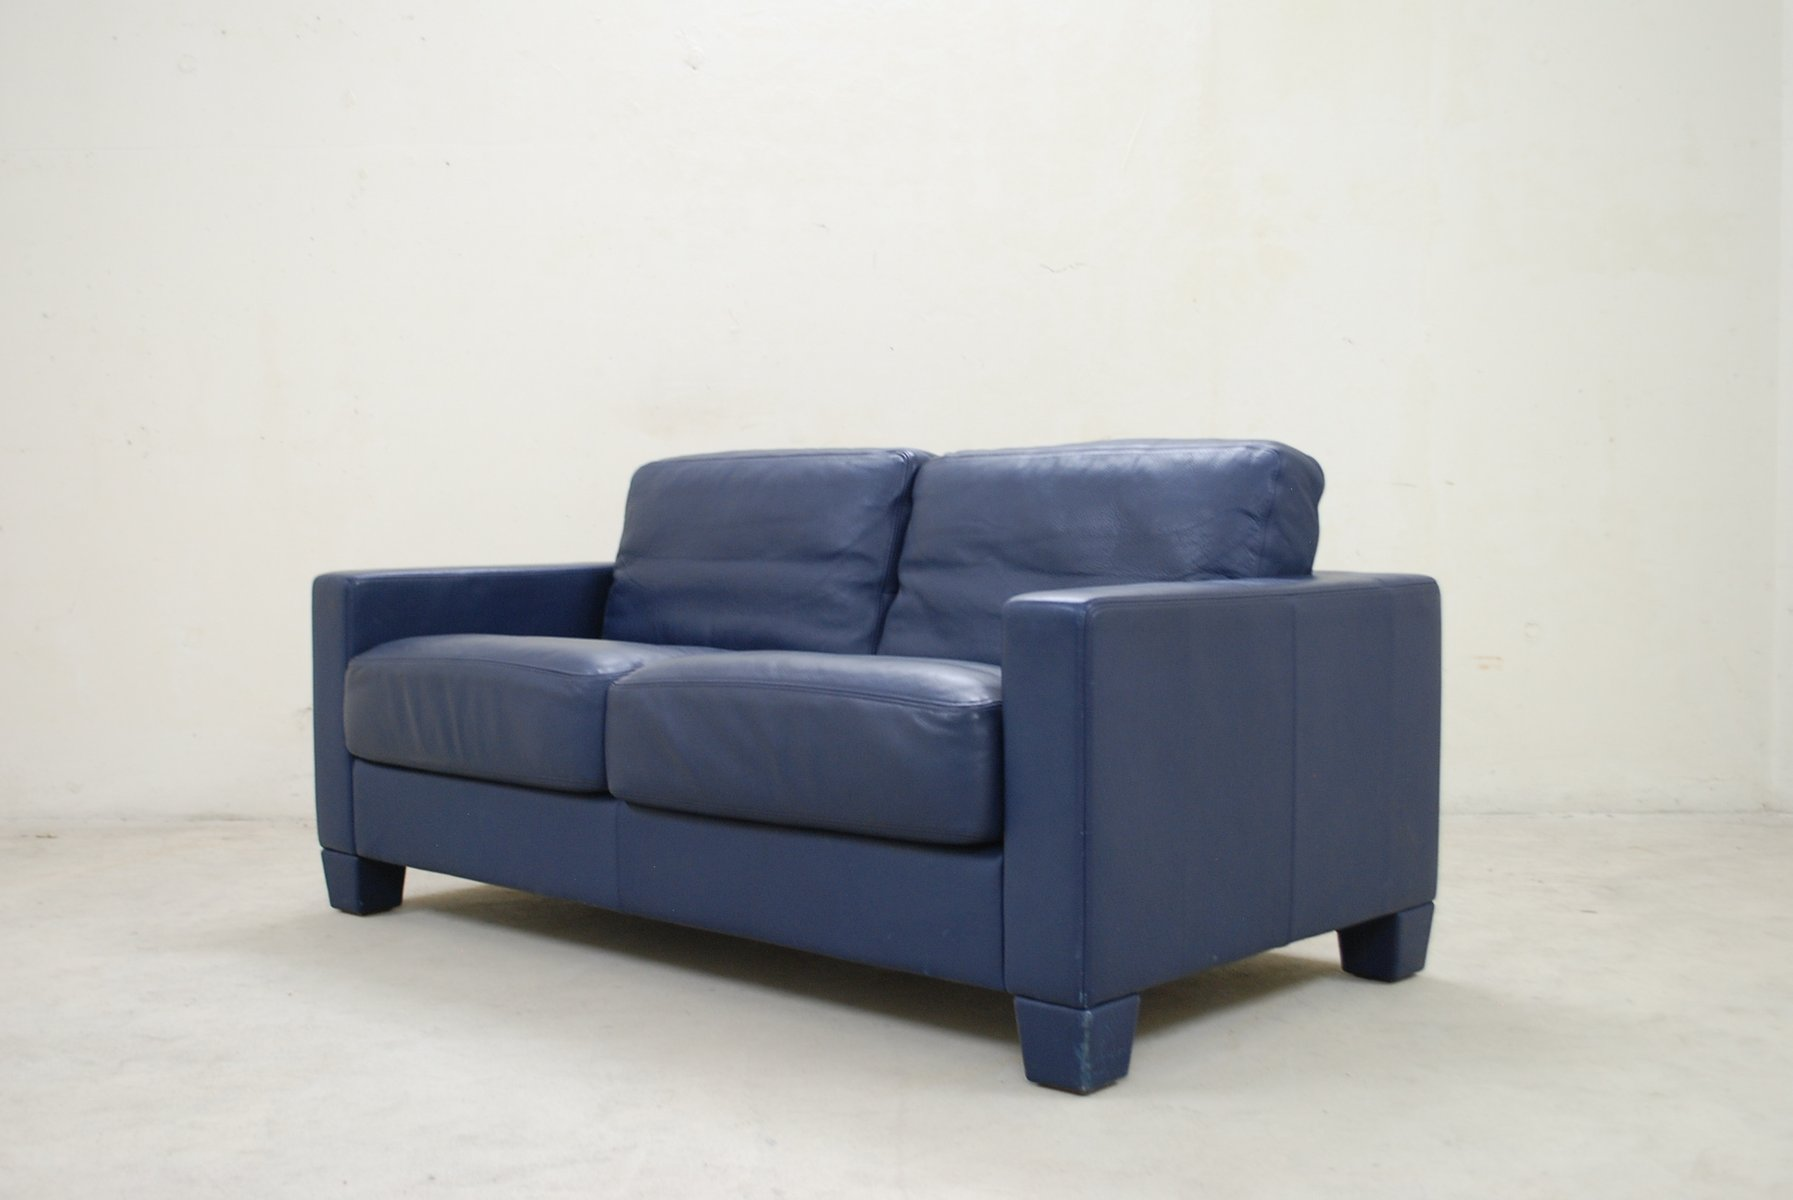 ds 17 sofa from de sede 1980s for sale at pamono. Black Bedroom Furniture Sets. Home Design Ideas